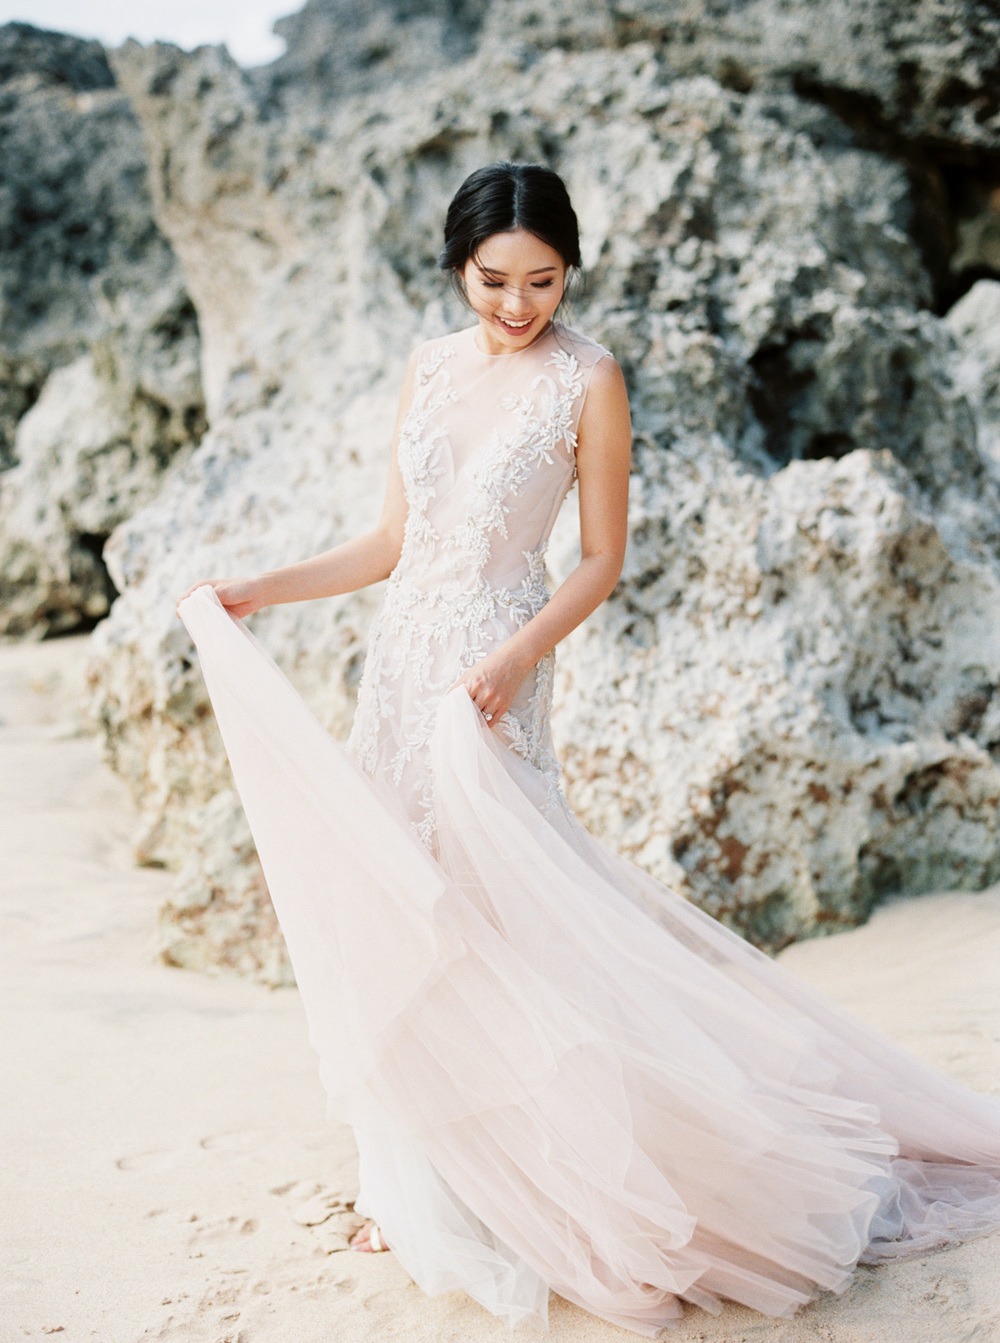 20-bali-wedding-photographer-stylist.jpg